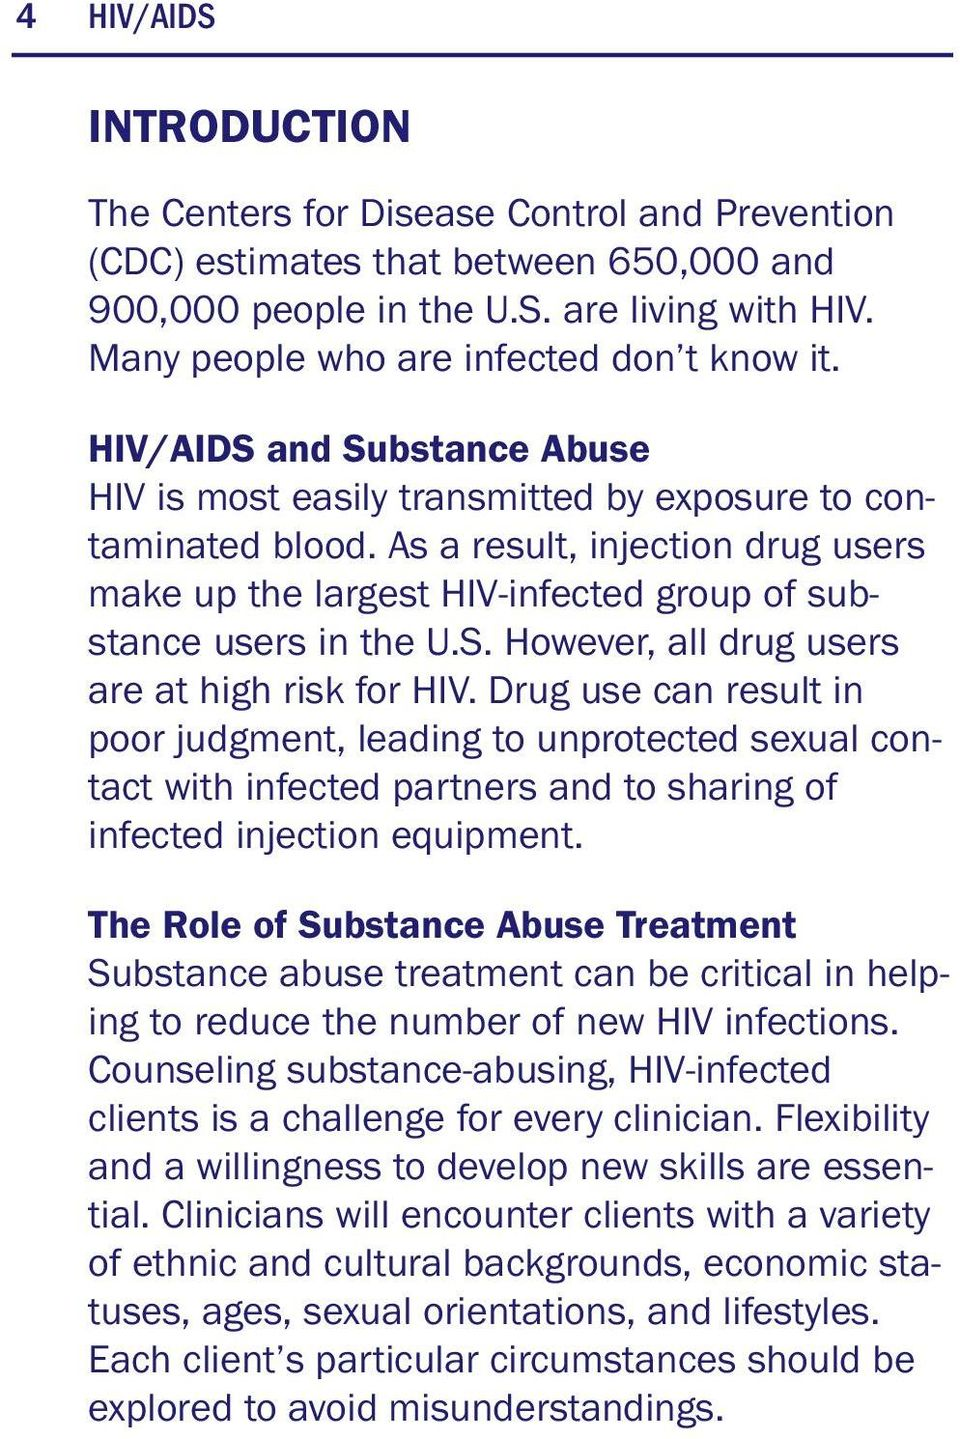 As a result, injection drug users make up the largest HIV-infected group of substance users in the U.S. However, all drug users are at high risk for HIV.